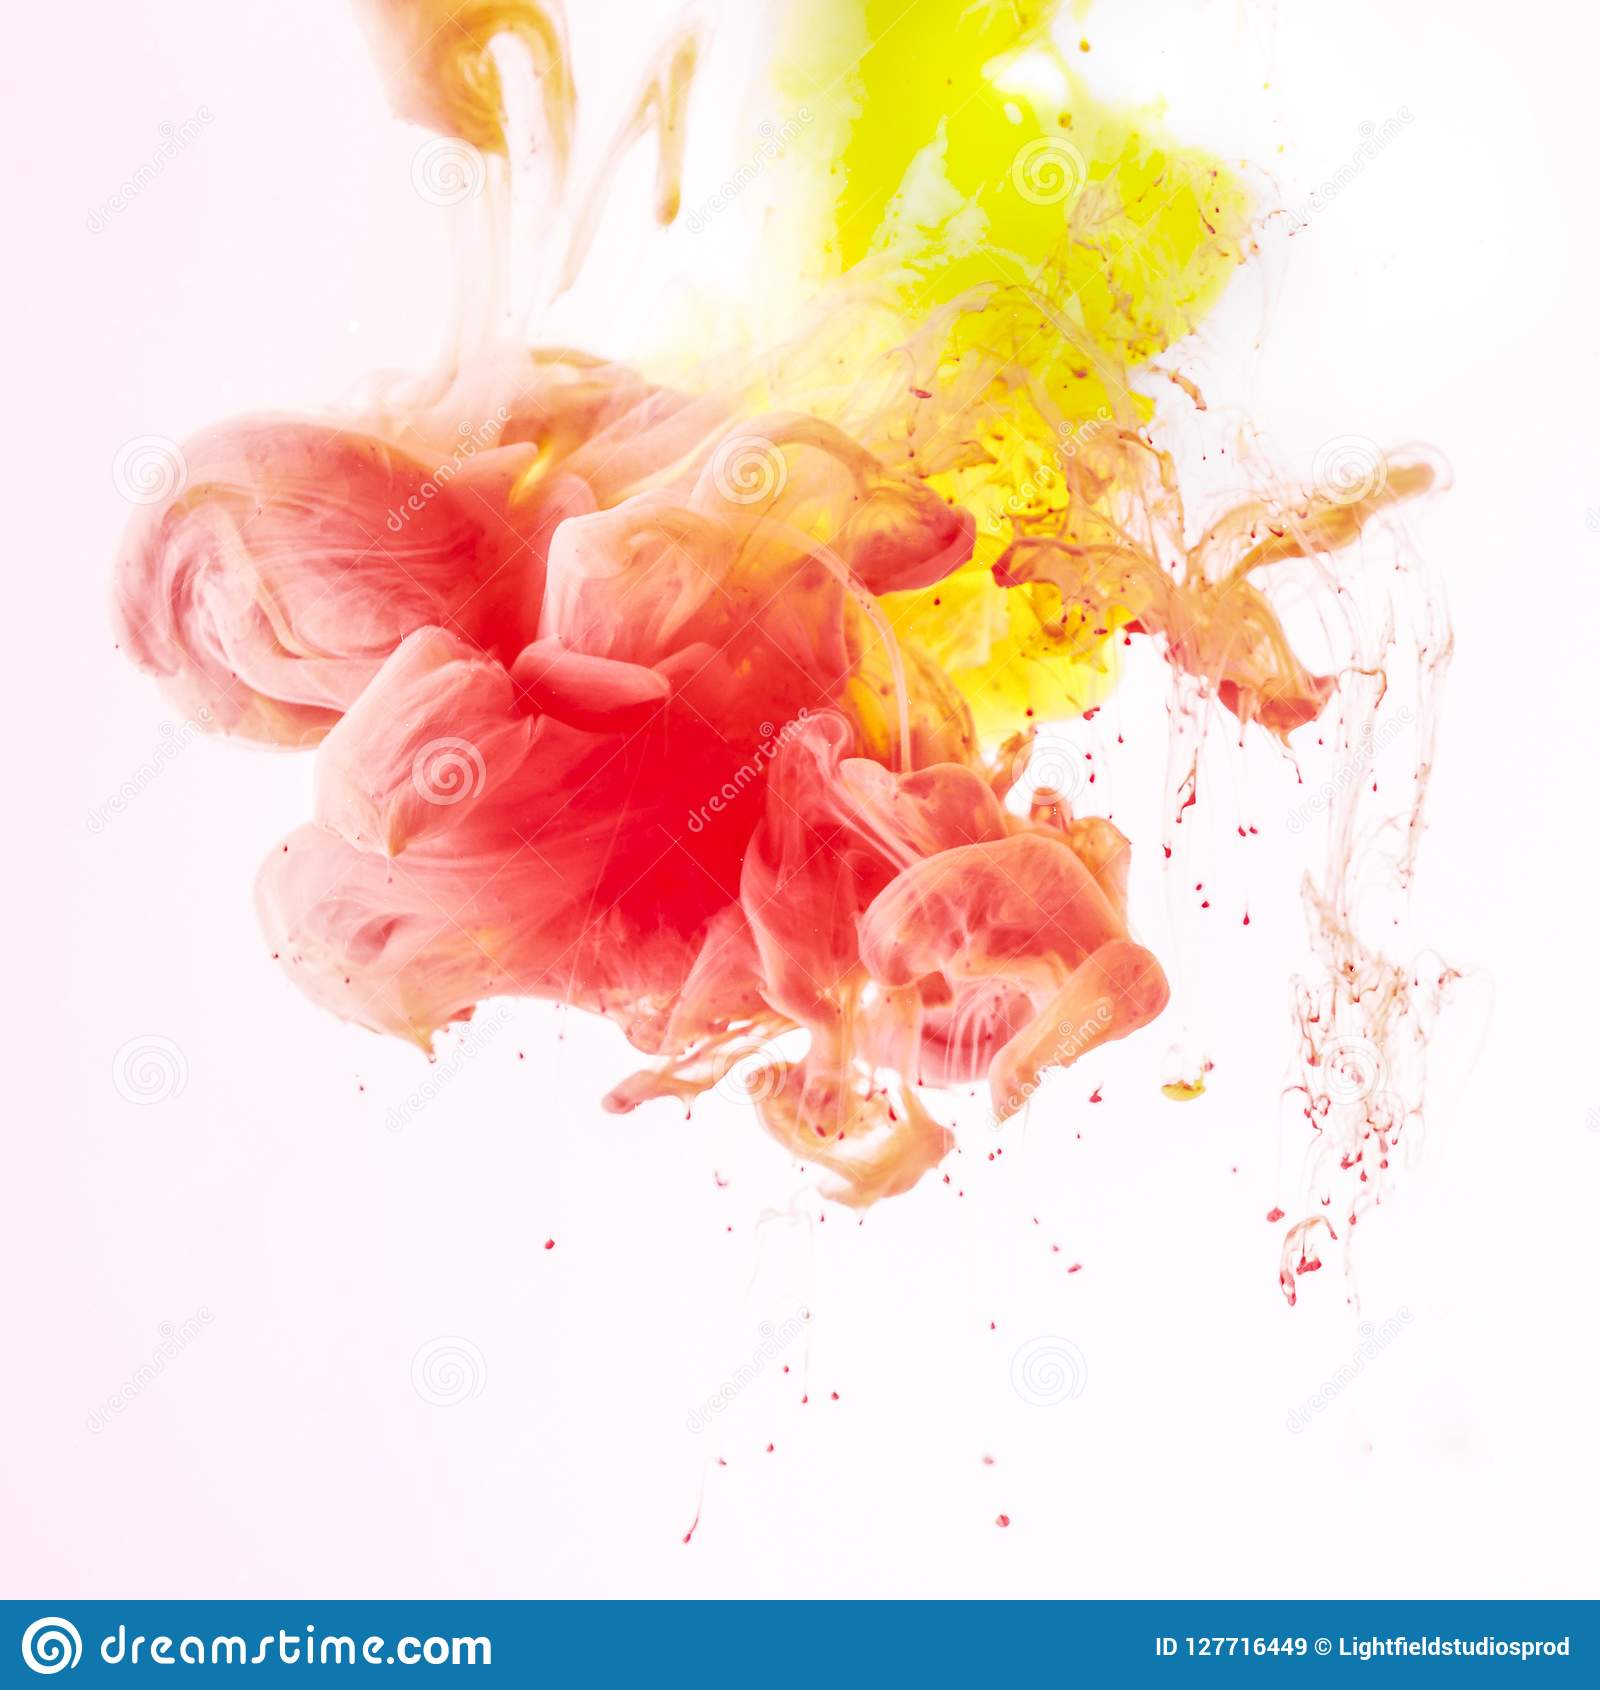 splashes of smoky yellow and red paint, isolated on white